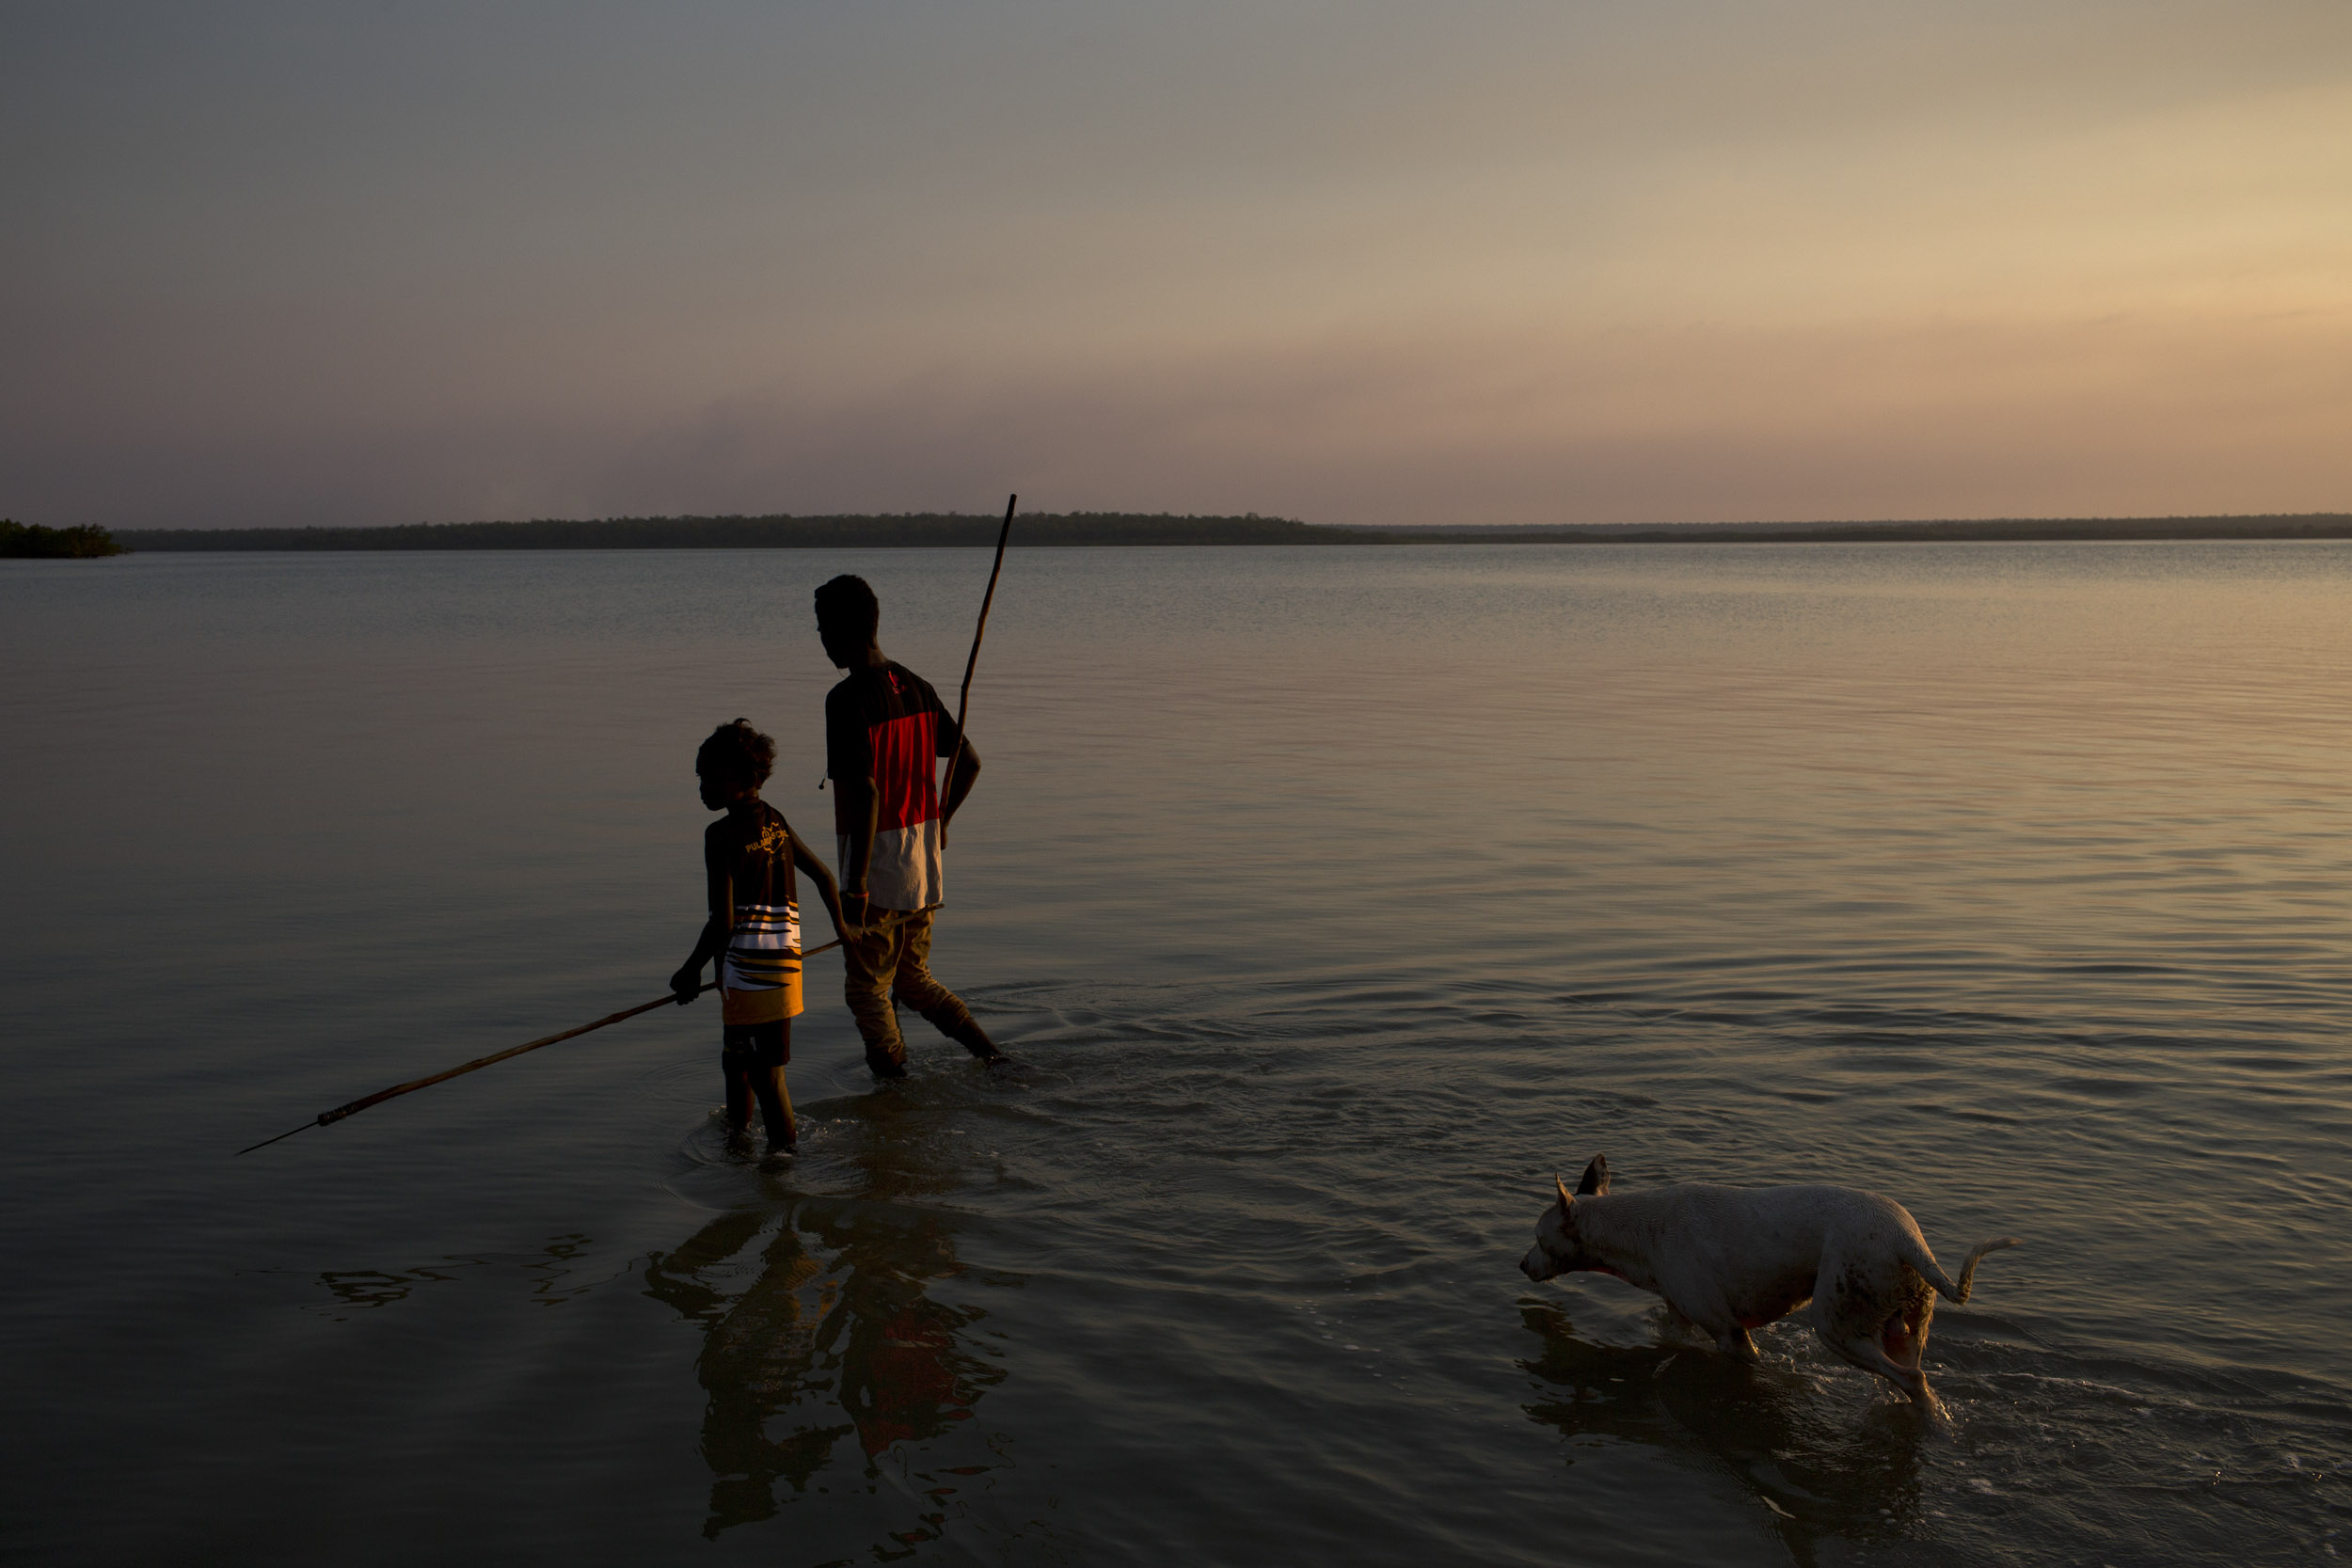 Boys hunt with traditional spears on Melville Island, Northern Territory.